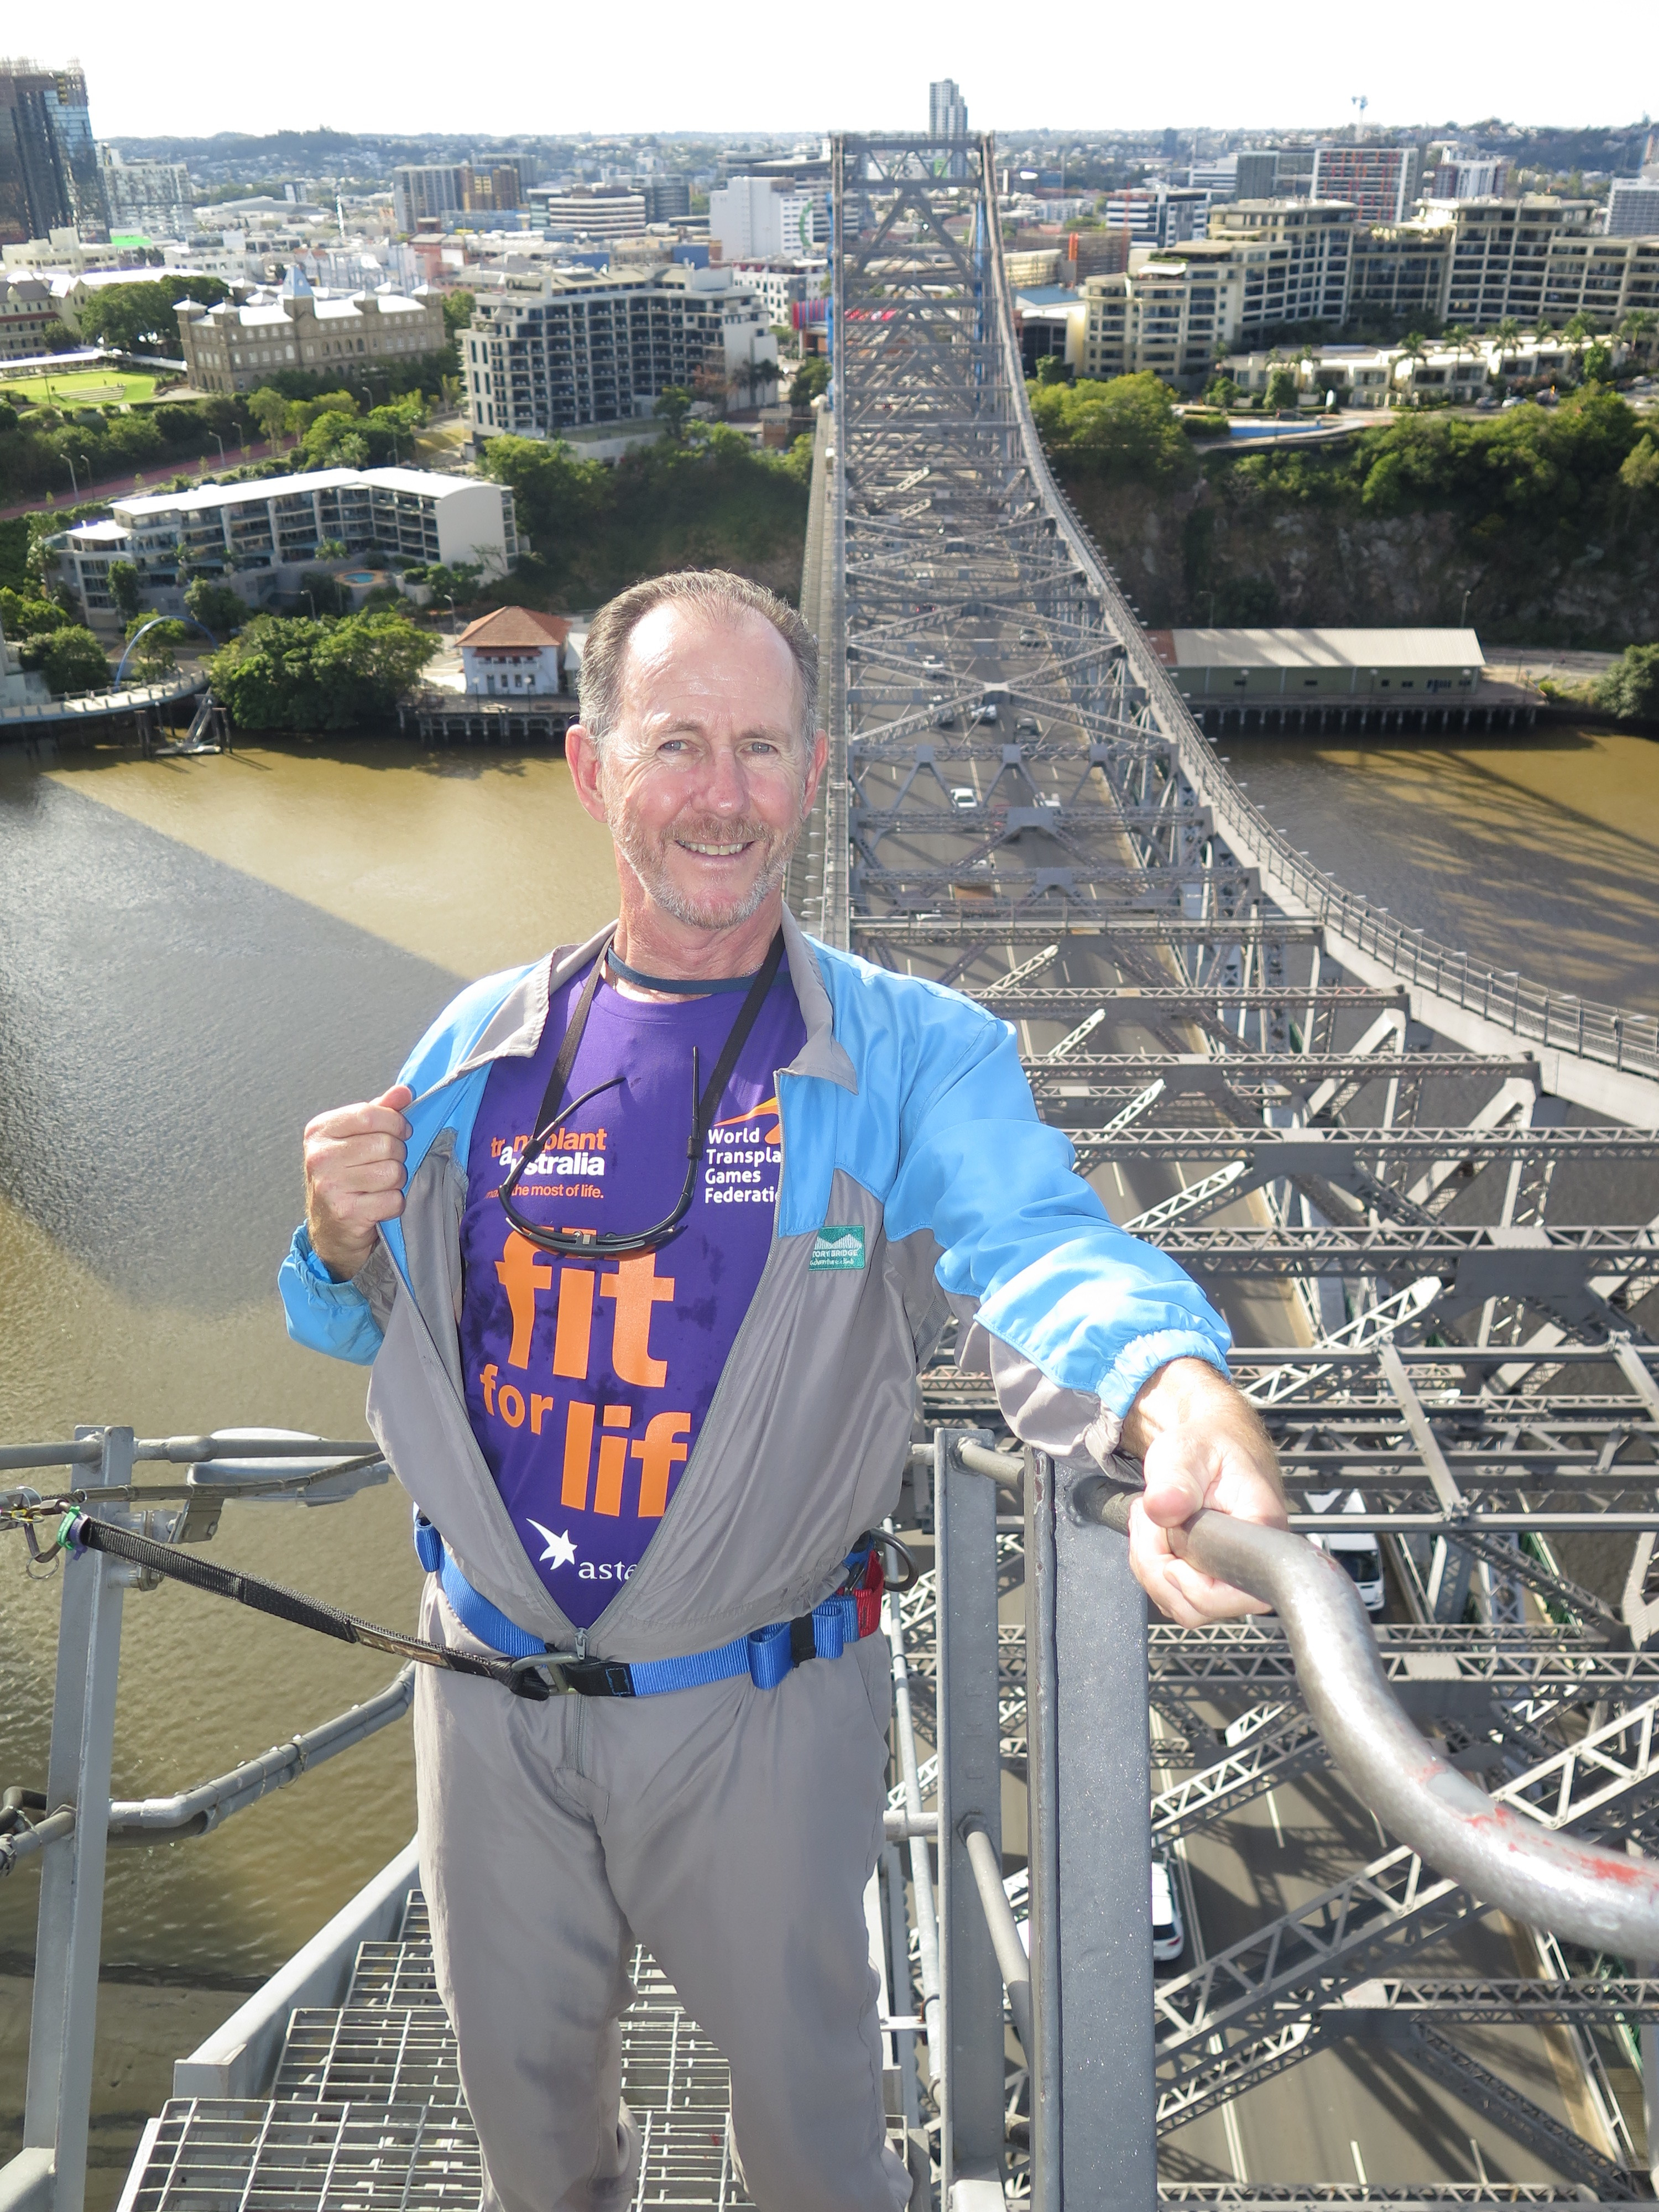 NSW's first Fit for Life Ambassador, Peter Champion